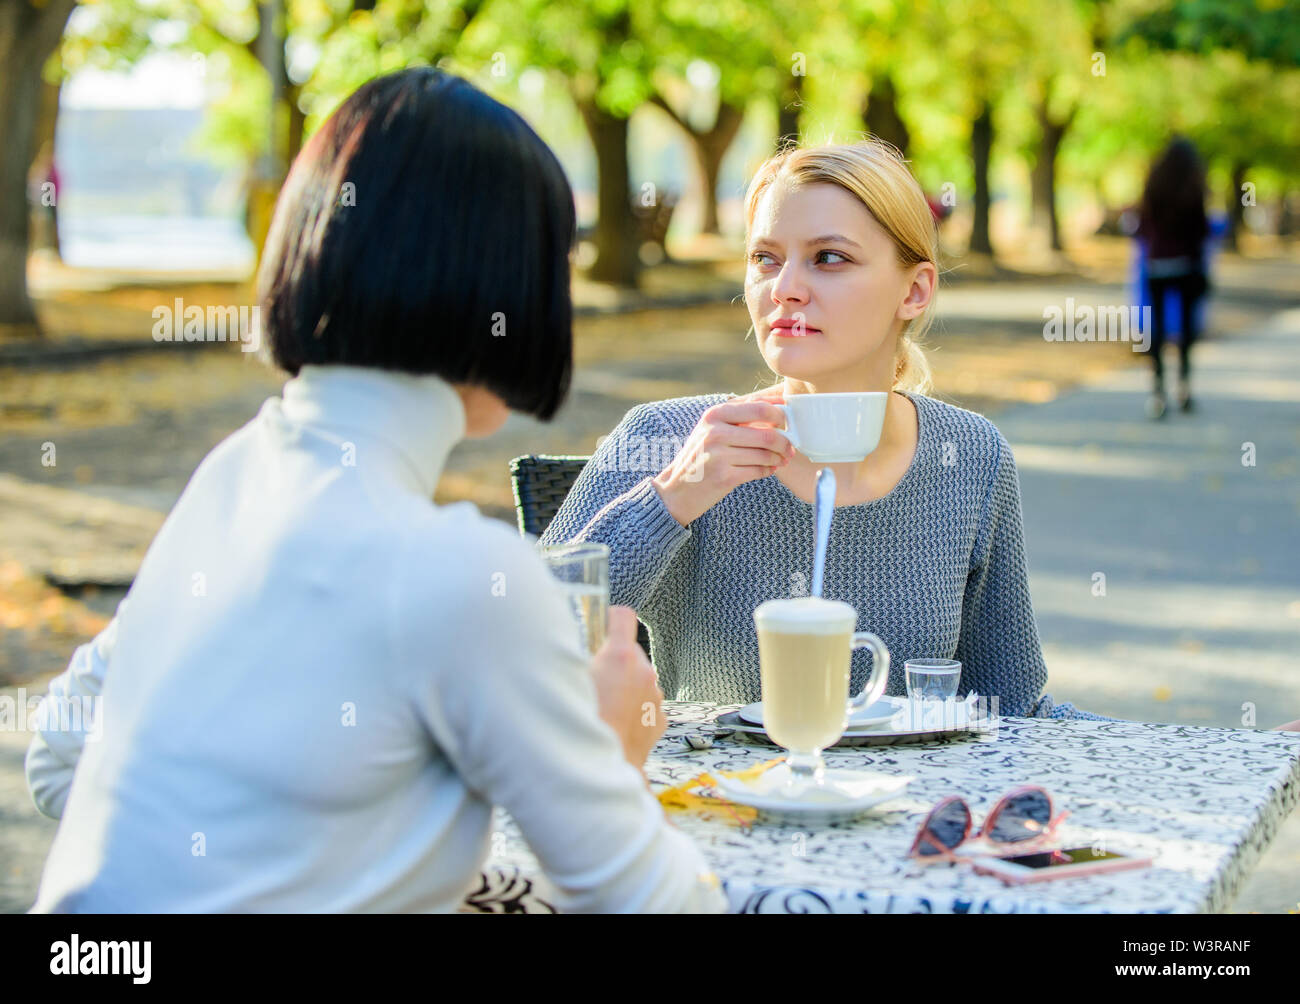 Discussing rumors. Trustful communication. Friendship sisters. Friendship meeting. Female leisure. Girls friends drink coffee talk. Conversation women - Stock Image